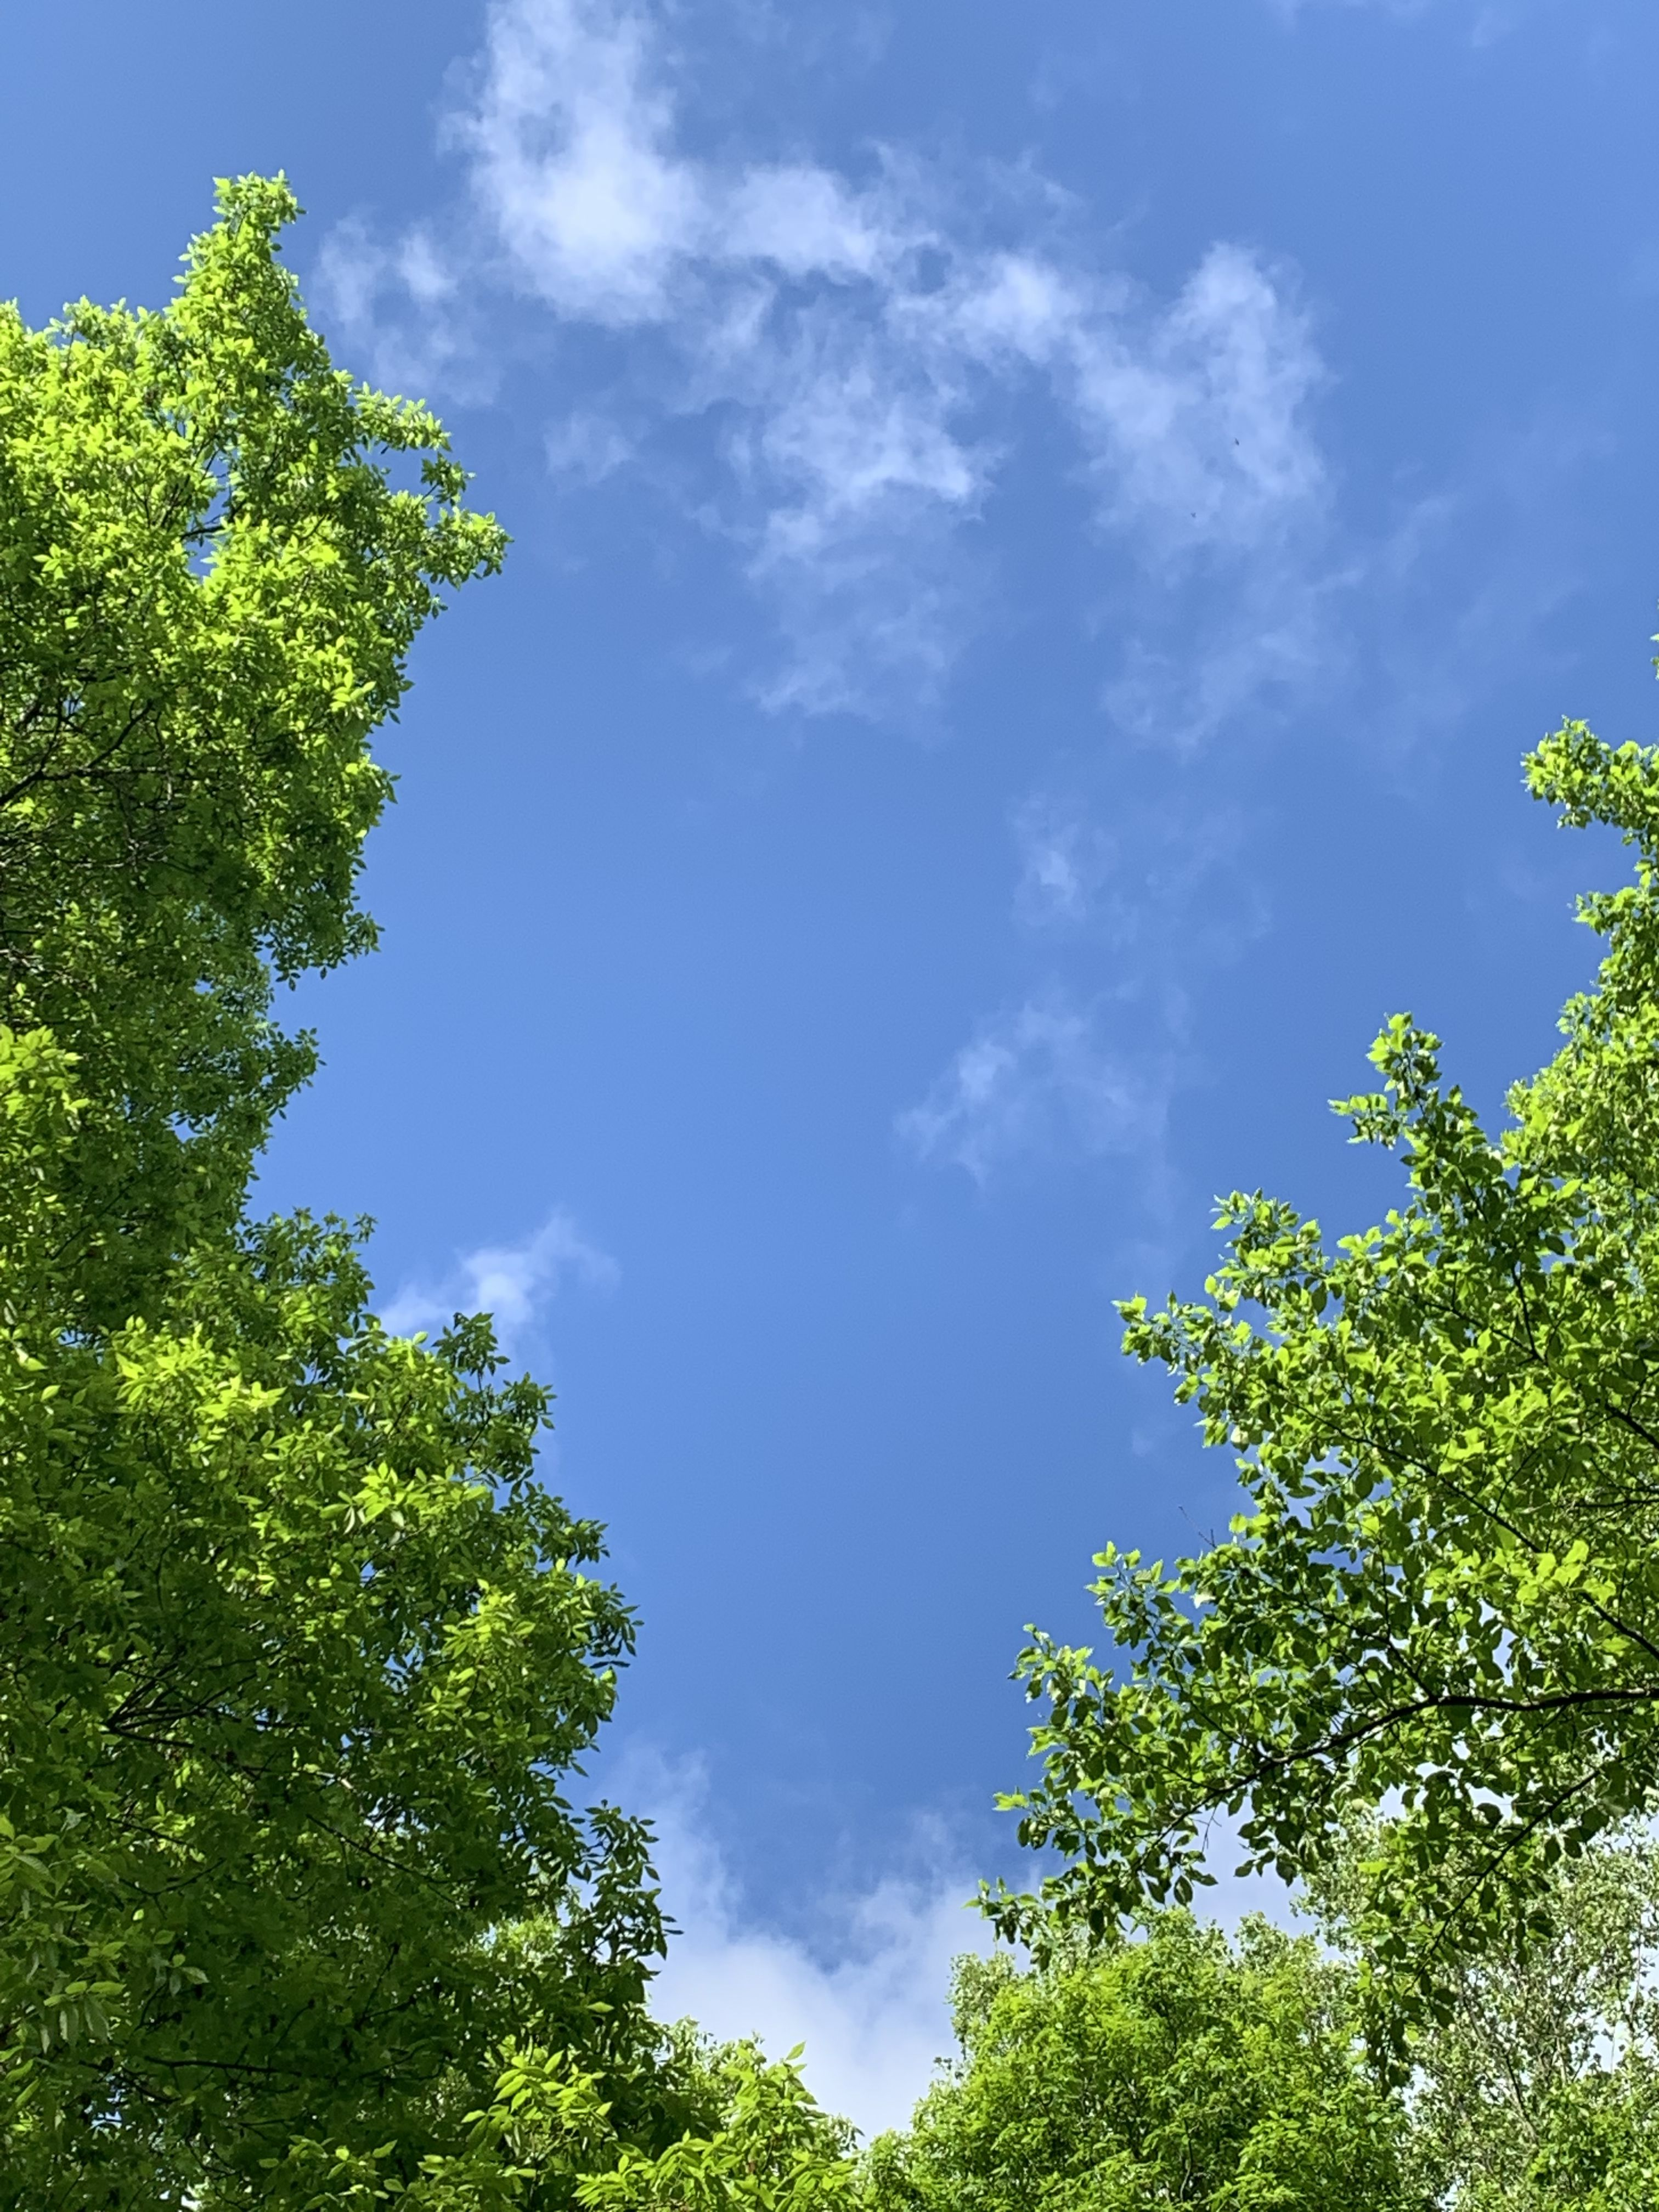 Beautiful Greenery And Blue Sky Today Nature Naturephotography Naturelovers Nature Photography Nature Outdoor